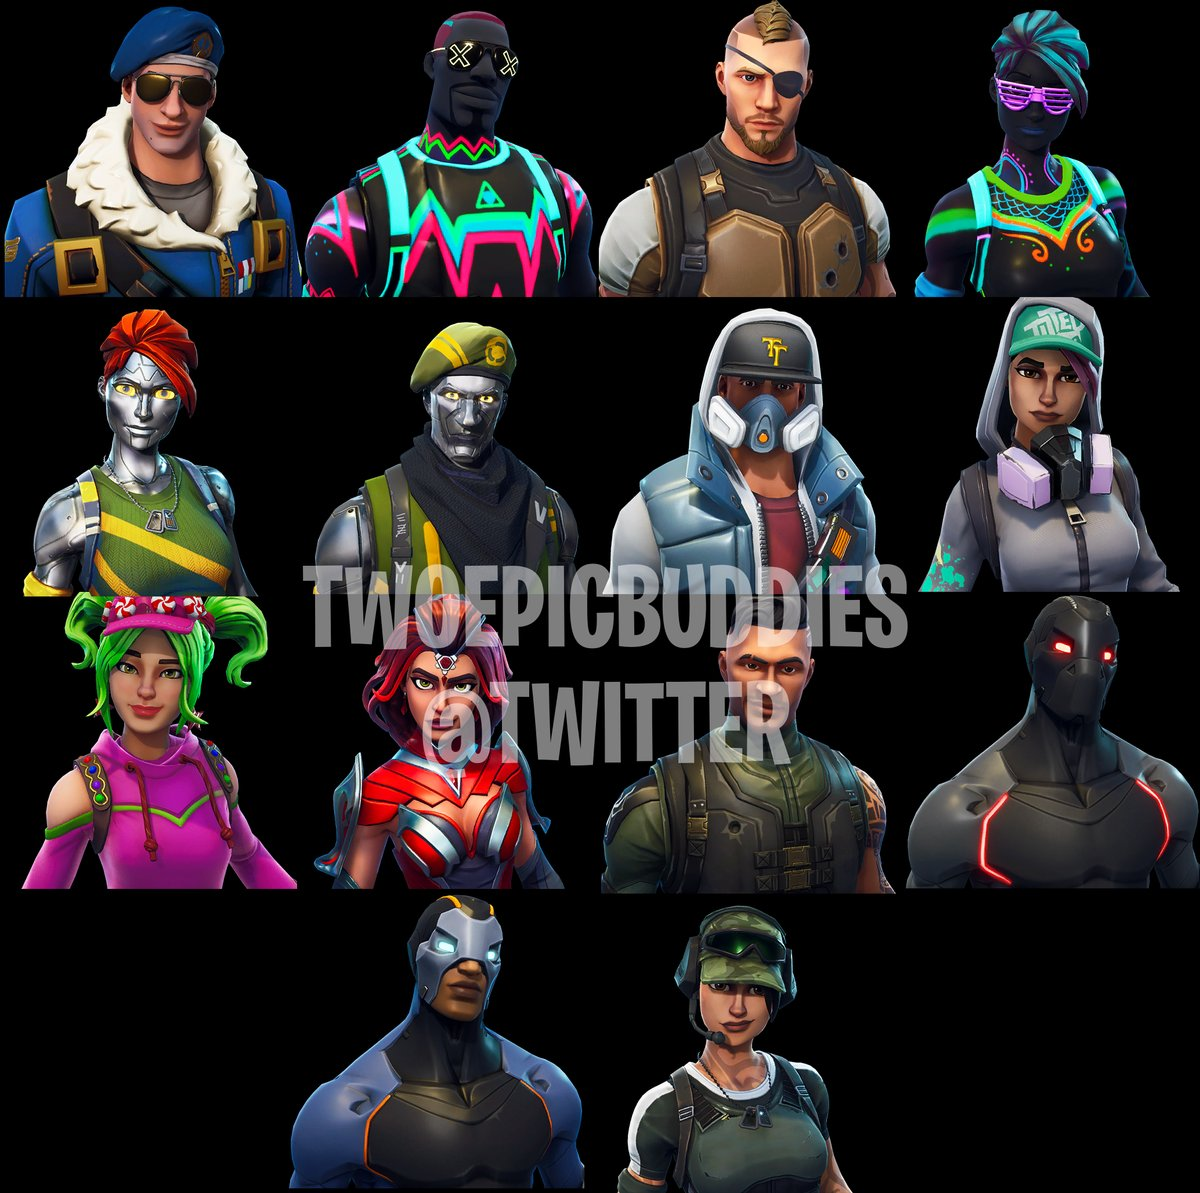 New Fortnite Season 4 Skins and Cosmetic Items Leaked on Twitter